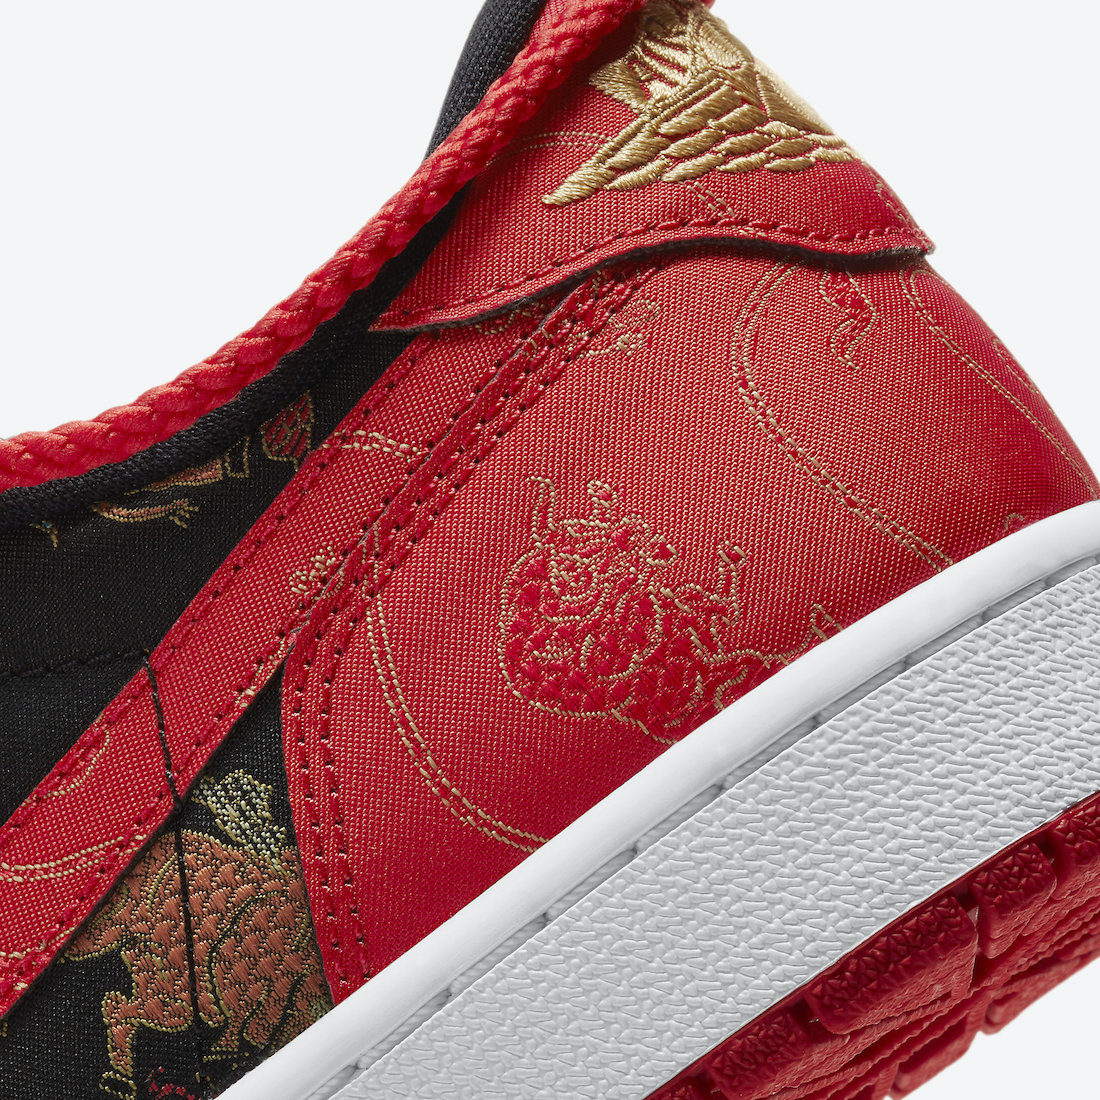 Air-Jordan-1-Low-CNY-Chinese-New-Year-DD2233-001-Release-Date-7